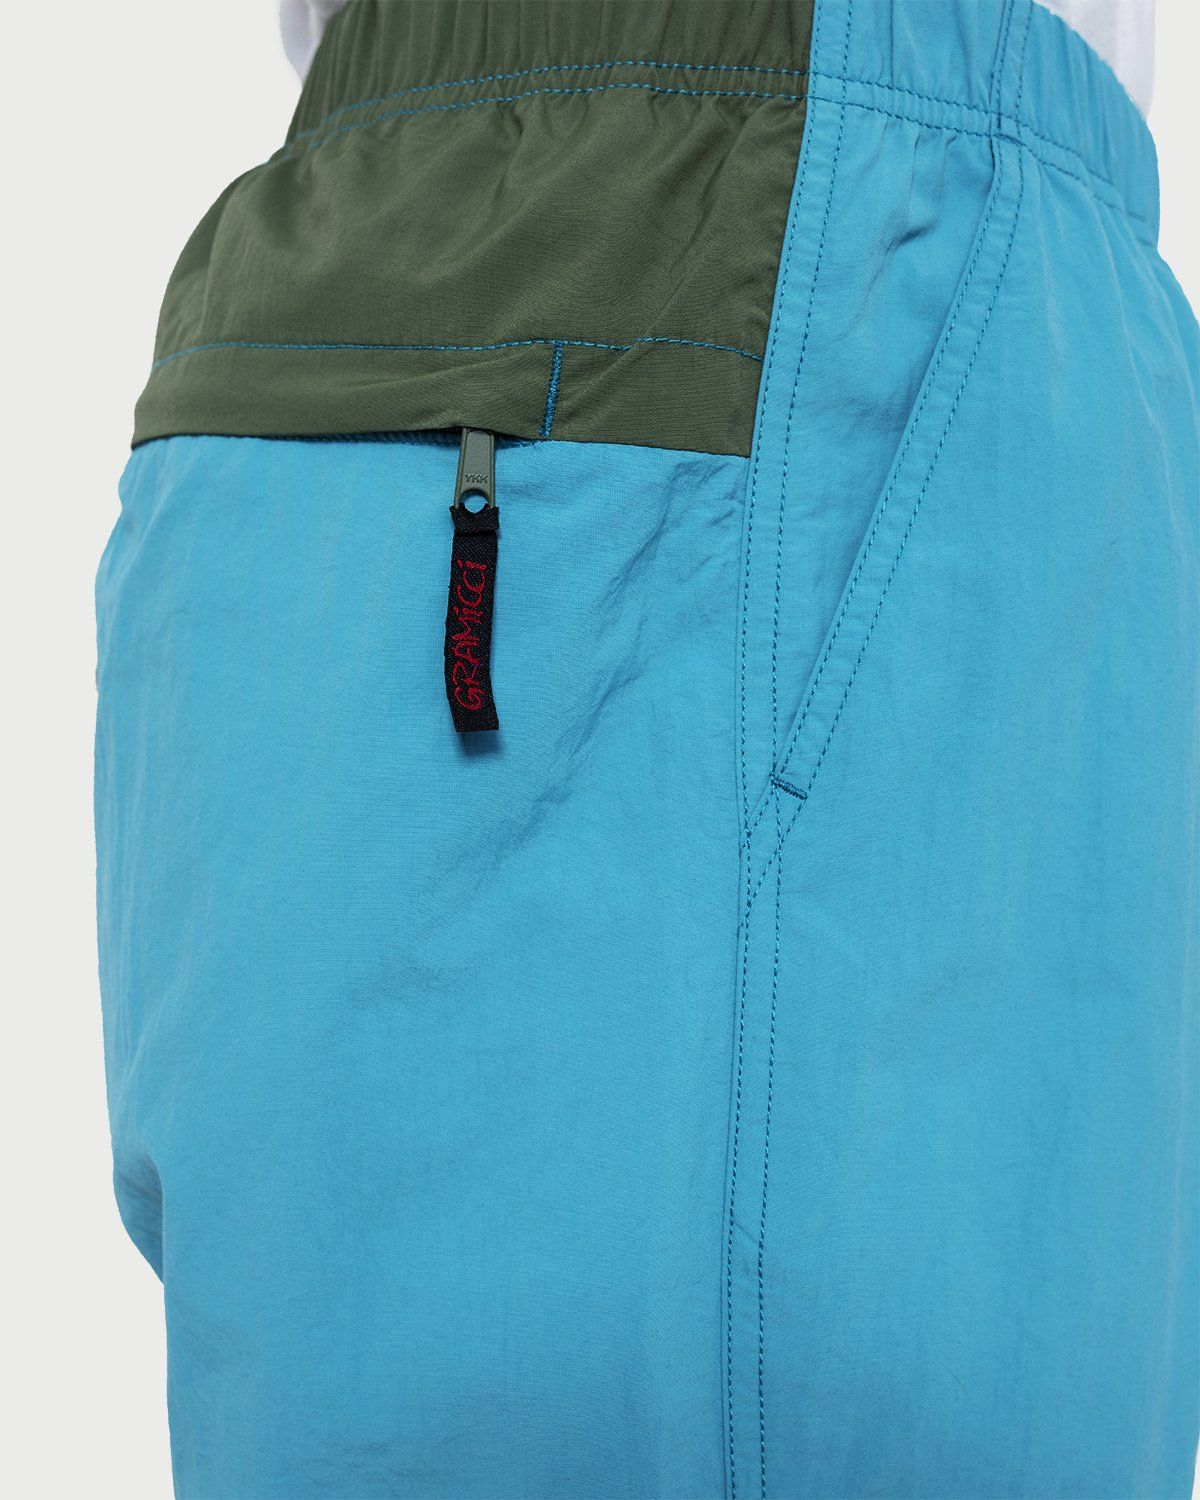 Gramicci - Shell Packable Shorts Aqua/Mocha - Image 3